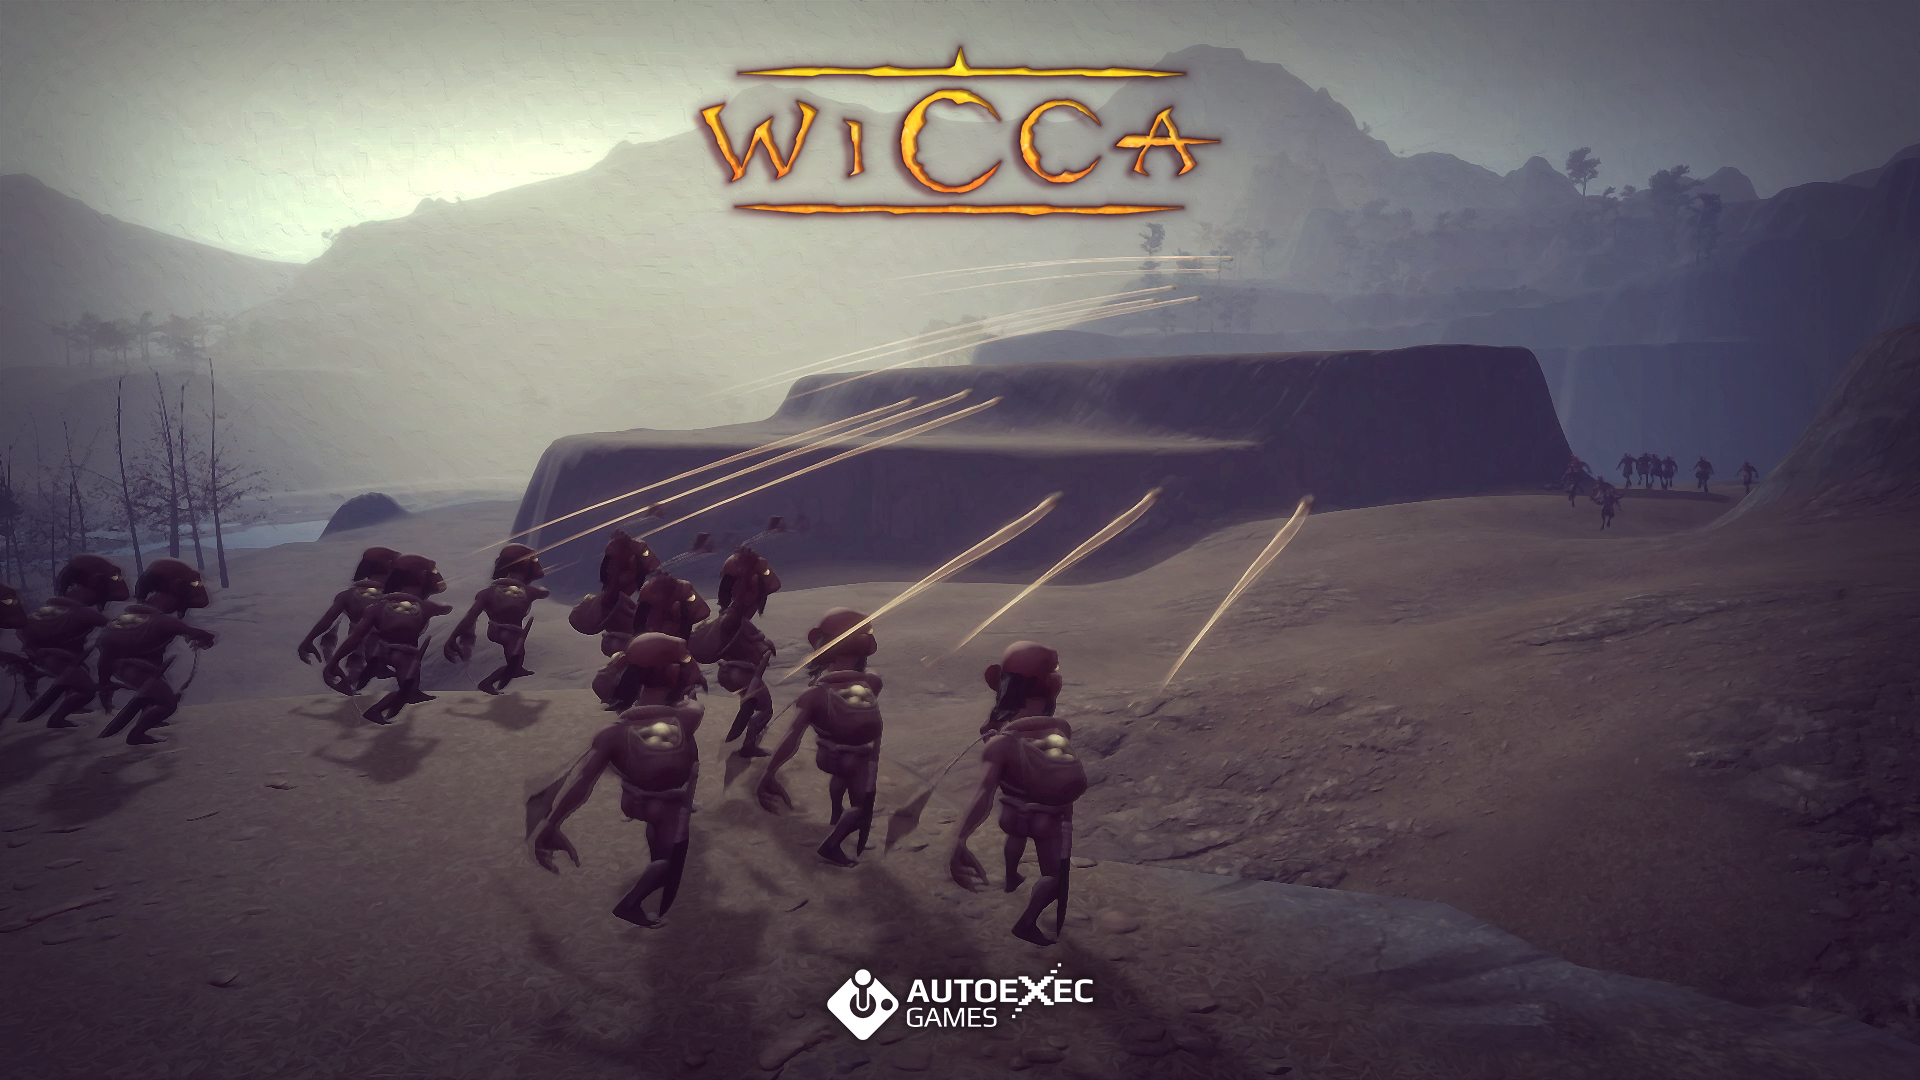 Wicca on Steam